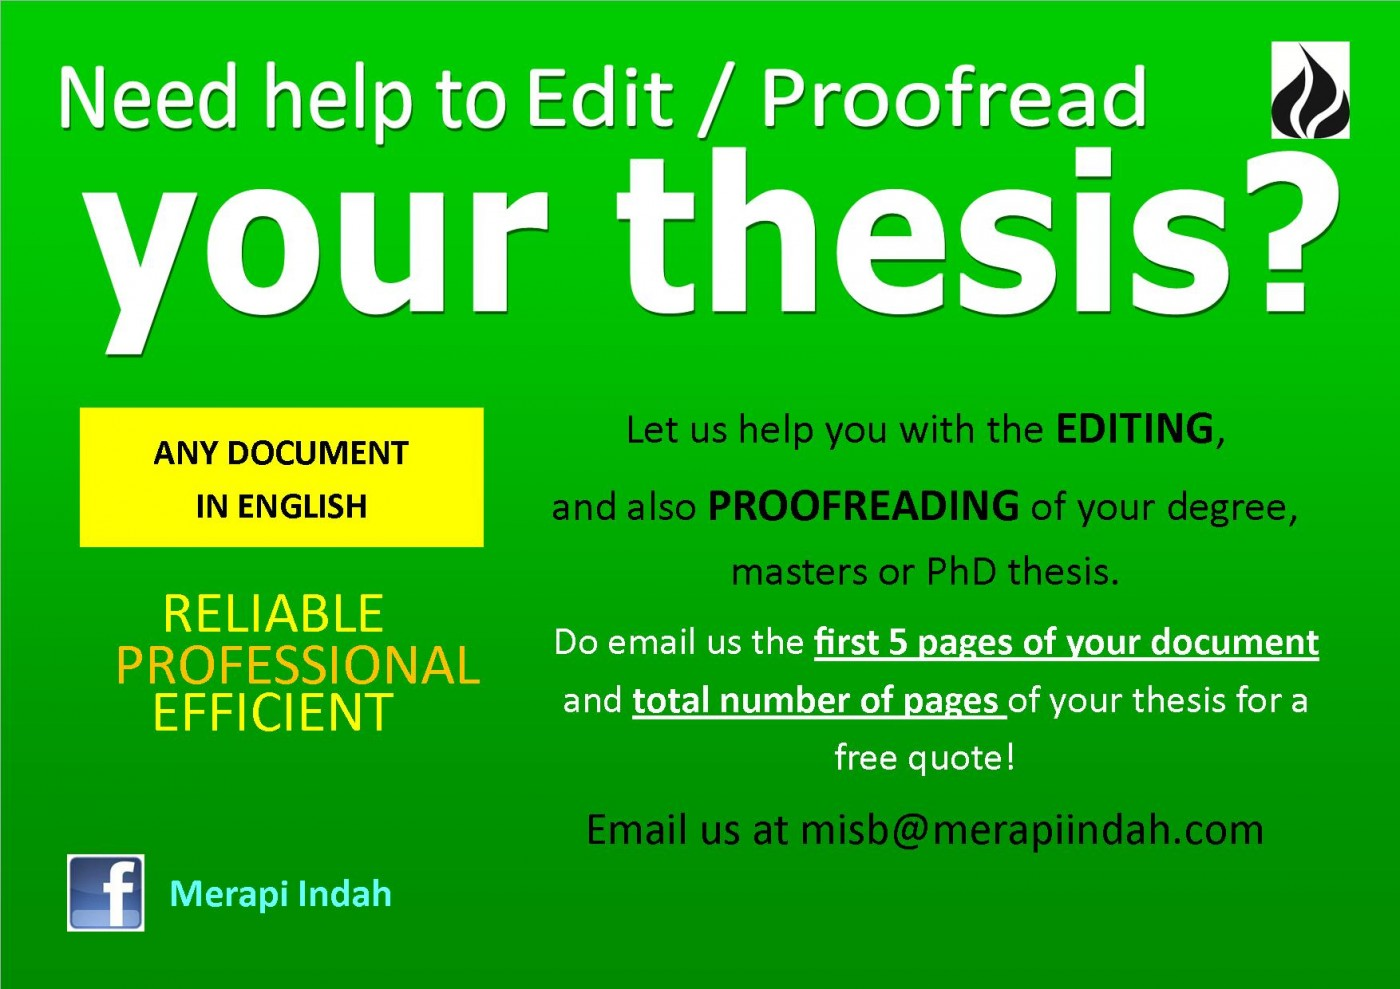 019 Essay Example Editor Misb Editing Proofreading Flyer Thesis Marvelous Service Generator Free 1400